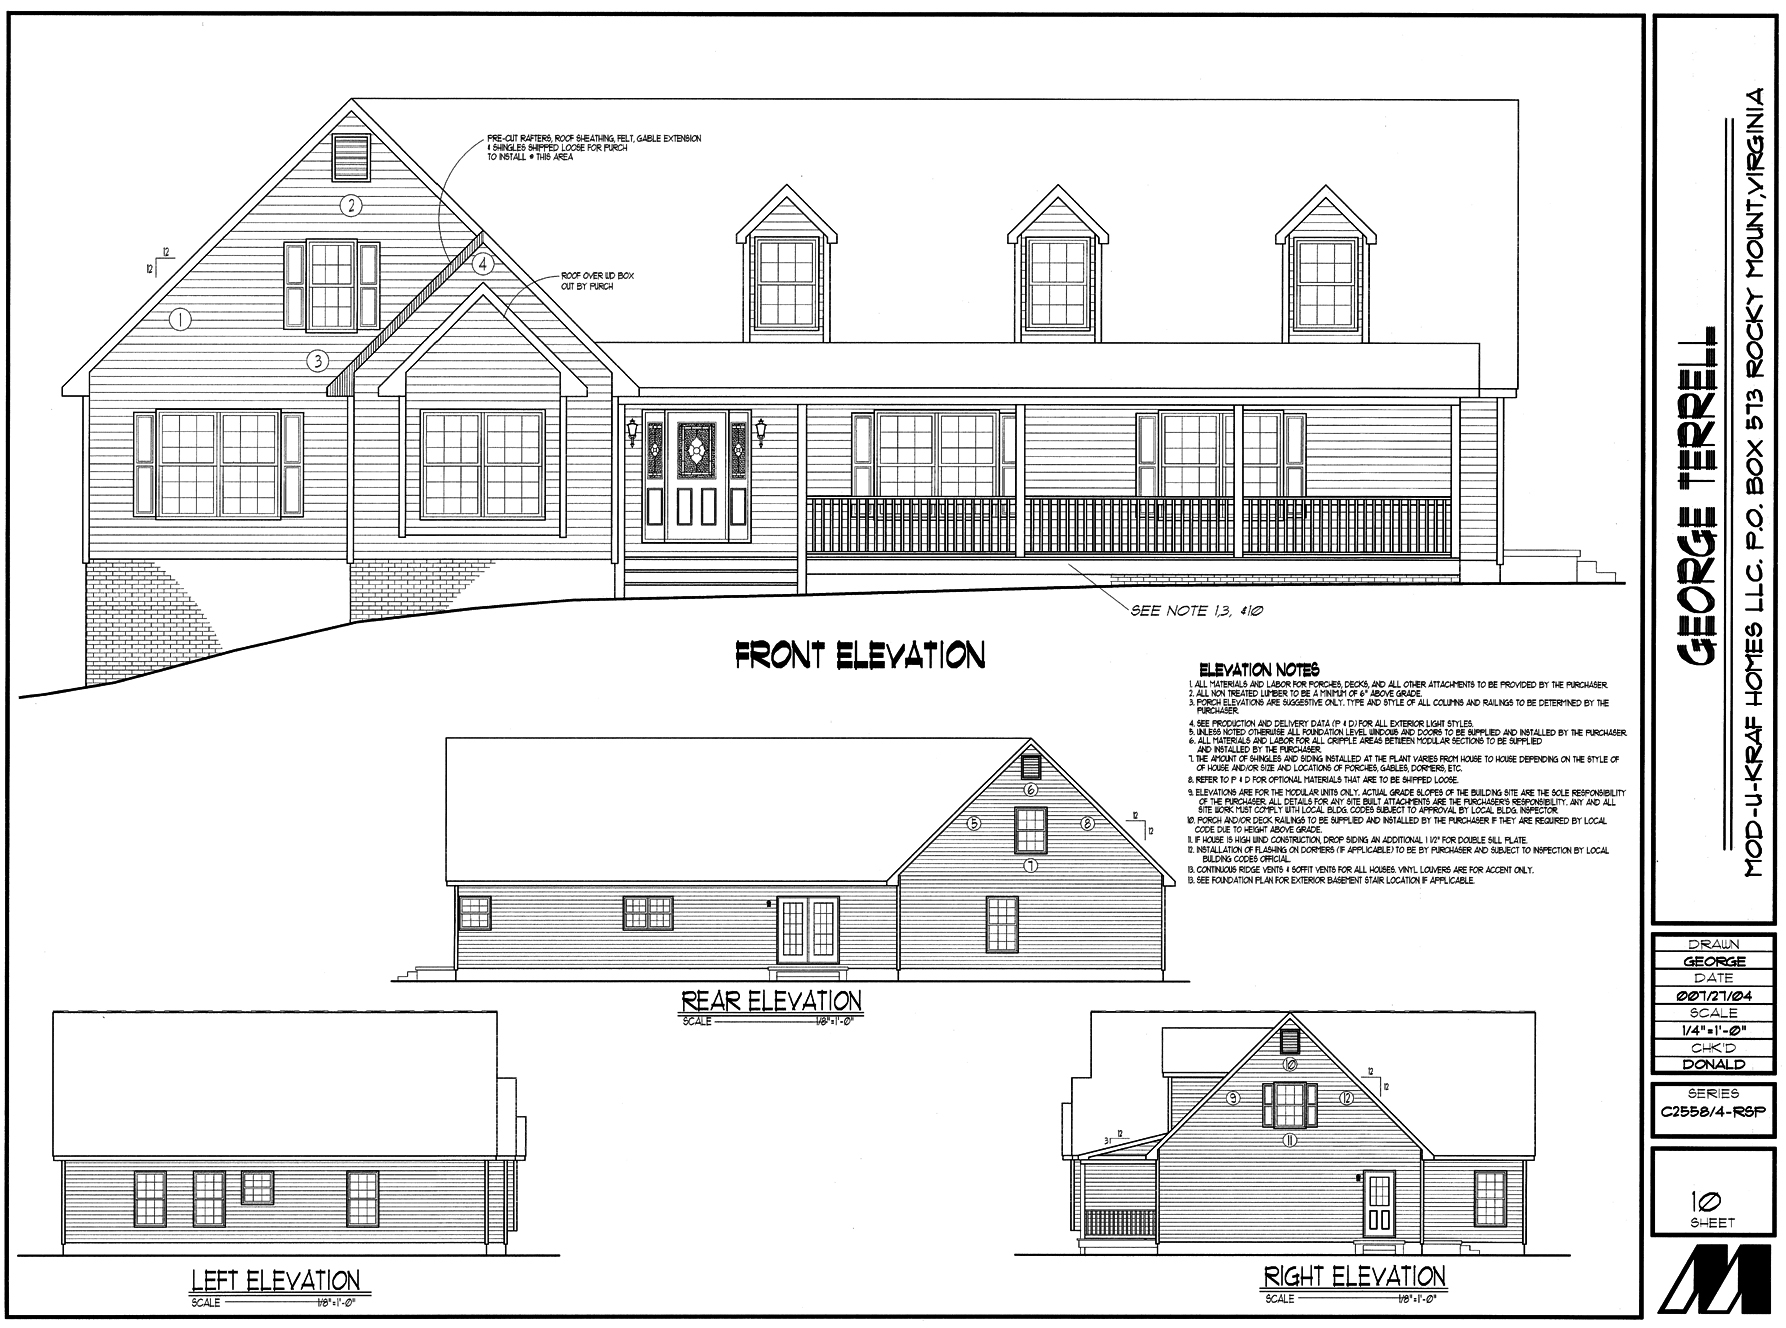 Front Elevation Residential Building Autocad : D layouts and designs mechanical woodworking by